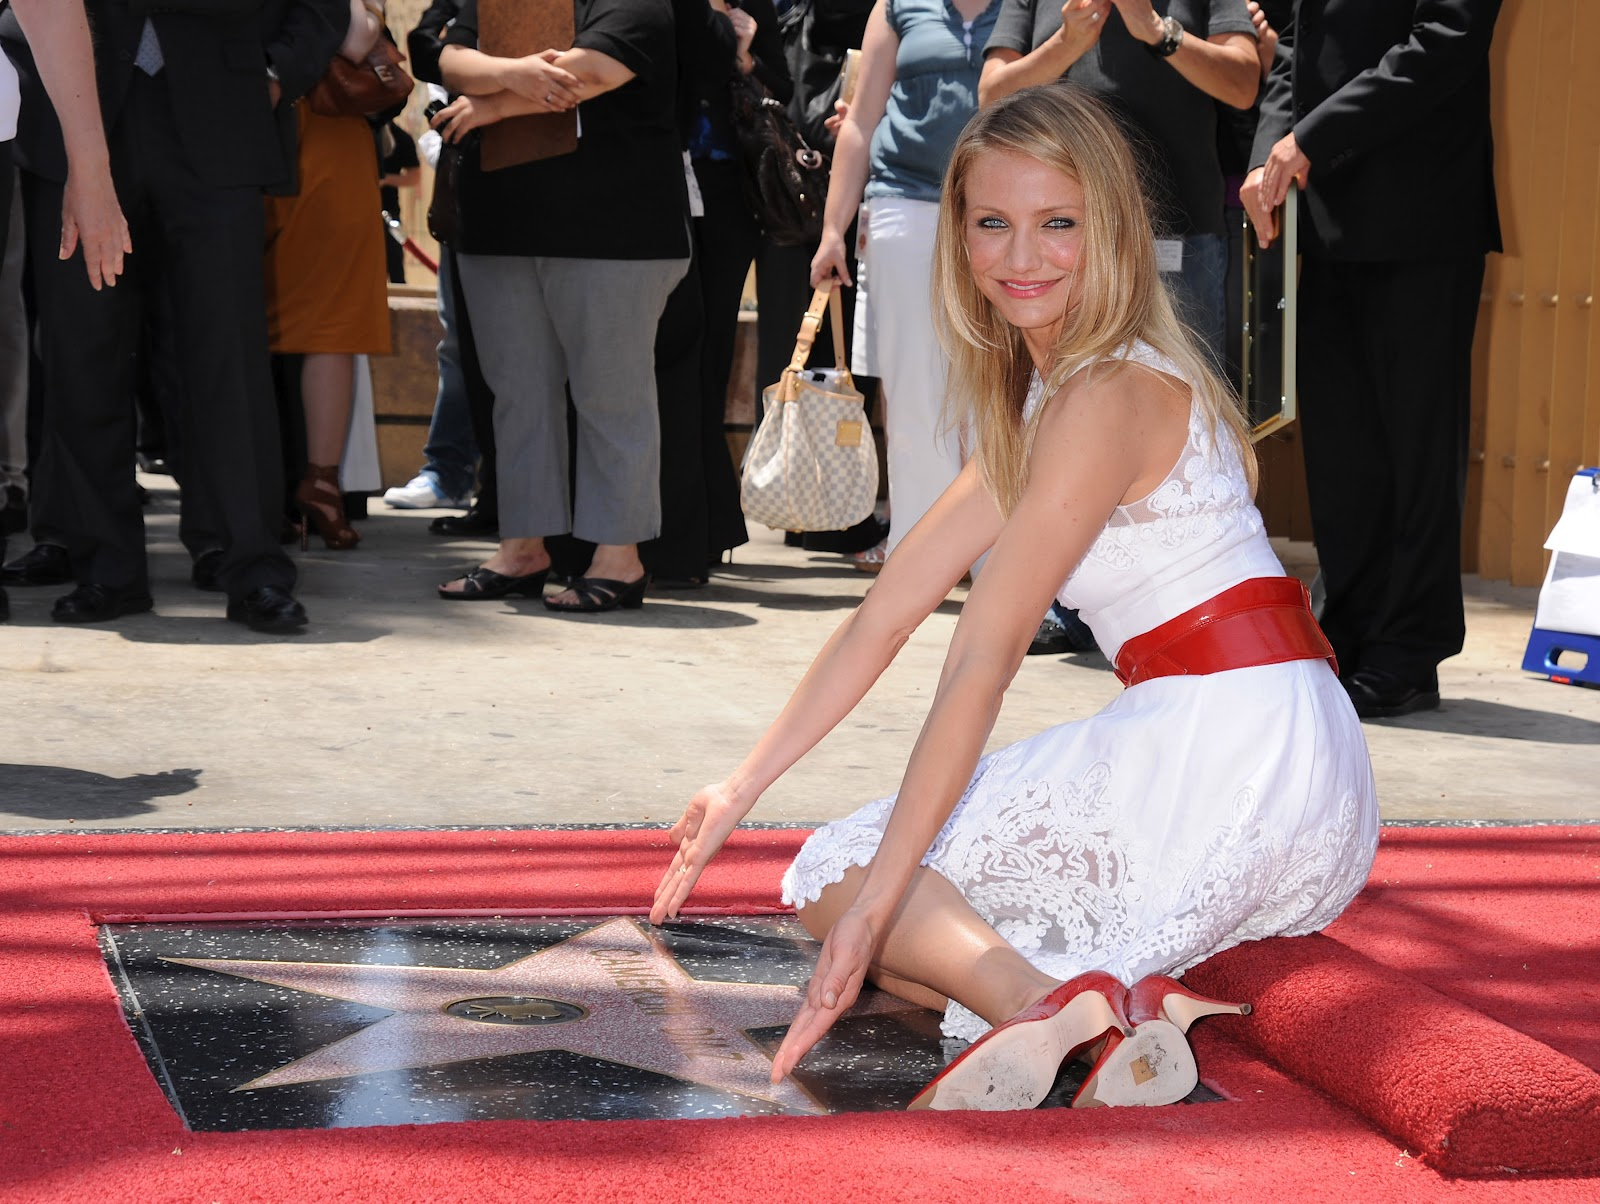 http://4.bp.blogspot.com/-t1NKJm_fNnc/T7ZcZi9fL-I/AAAAAAAAAPI/SOoGfqjjFwo/s1600/cameron_diaz_honored_on_the_hollywood_walk_of_fame_22_june_2009_dV41Red.giangchaunews.blogspot.com.jpg